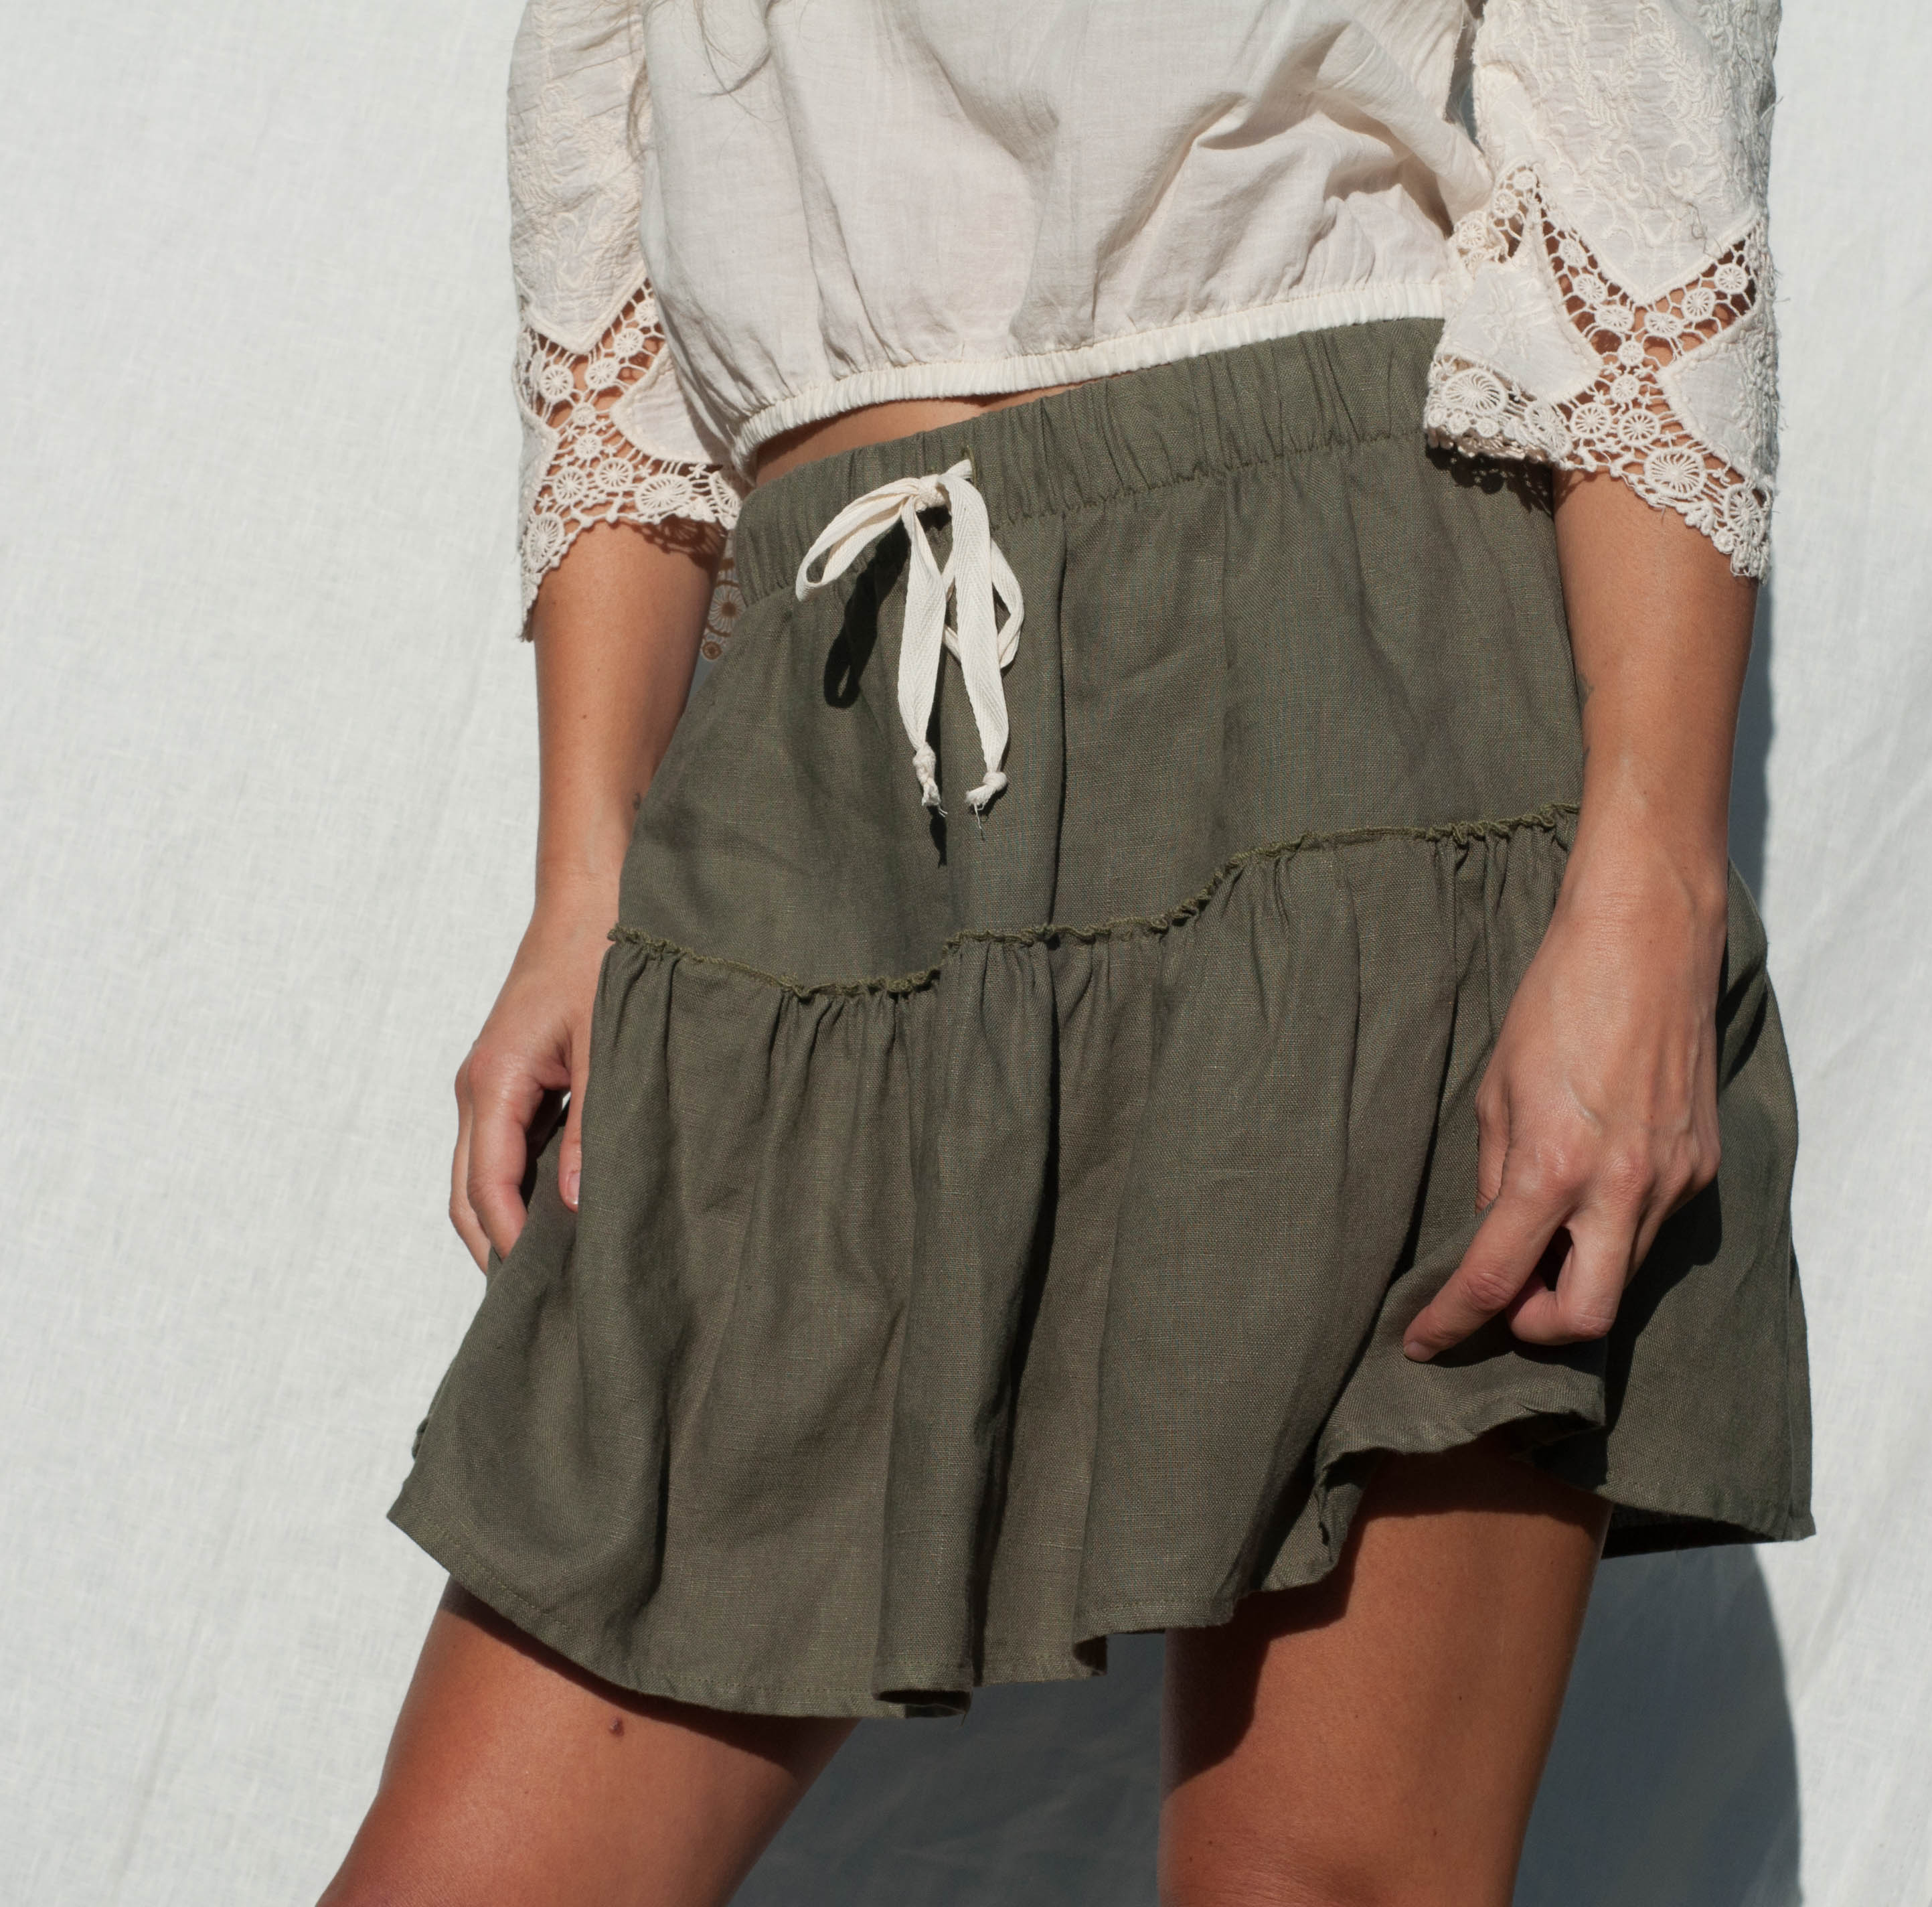 Ava Linen Skirt in Rosemary